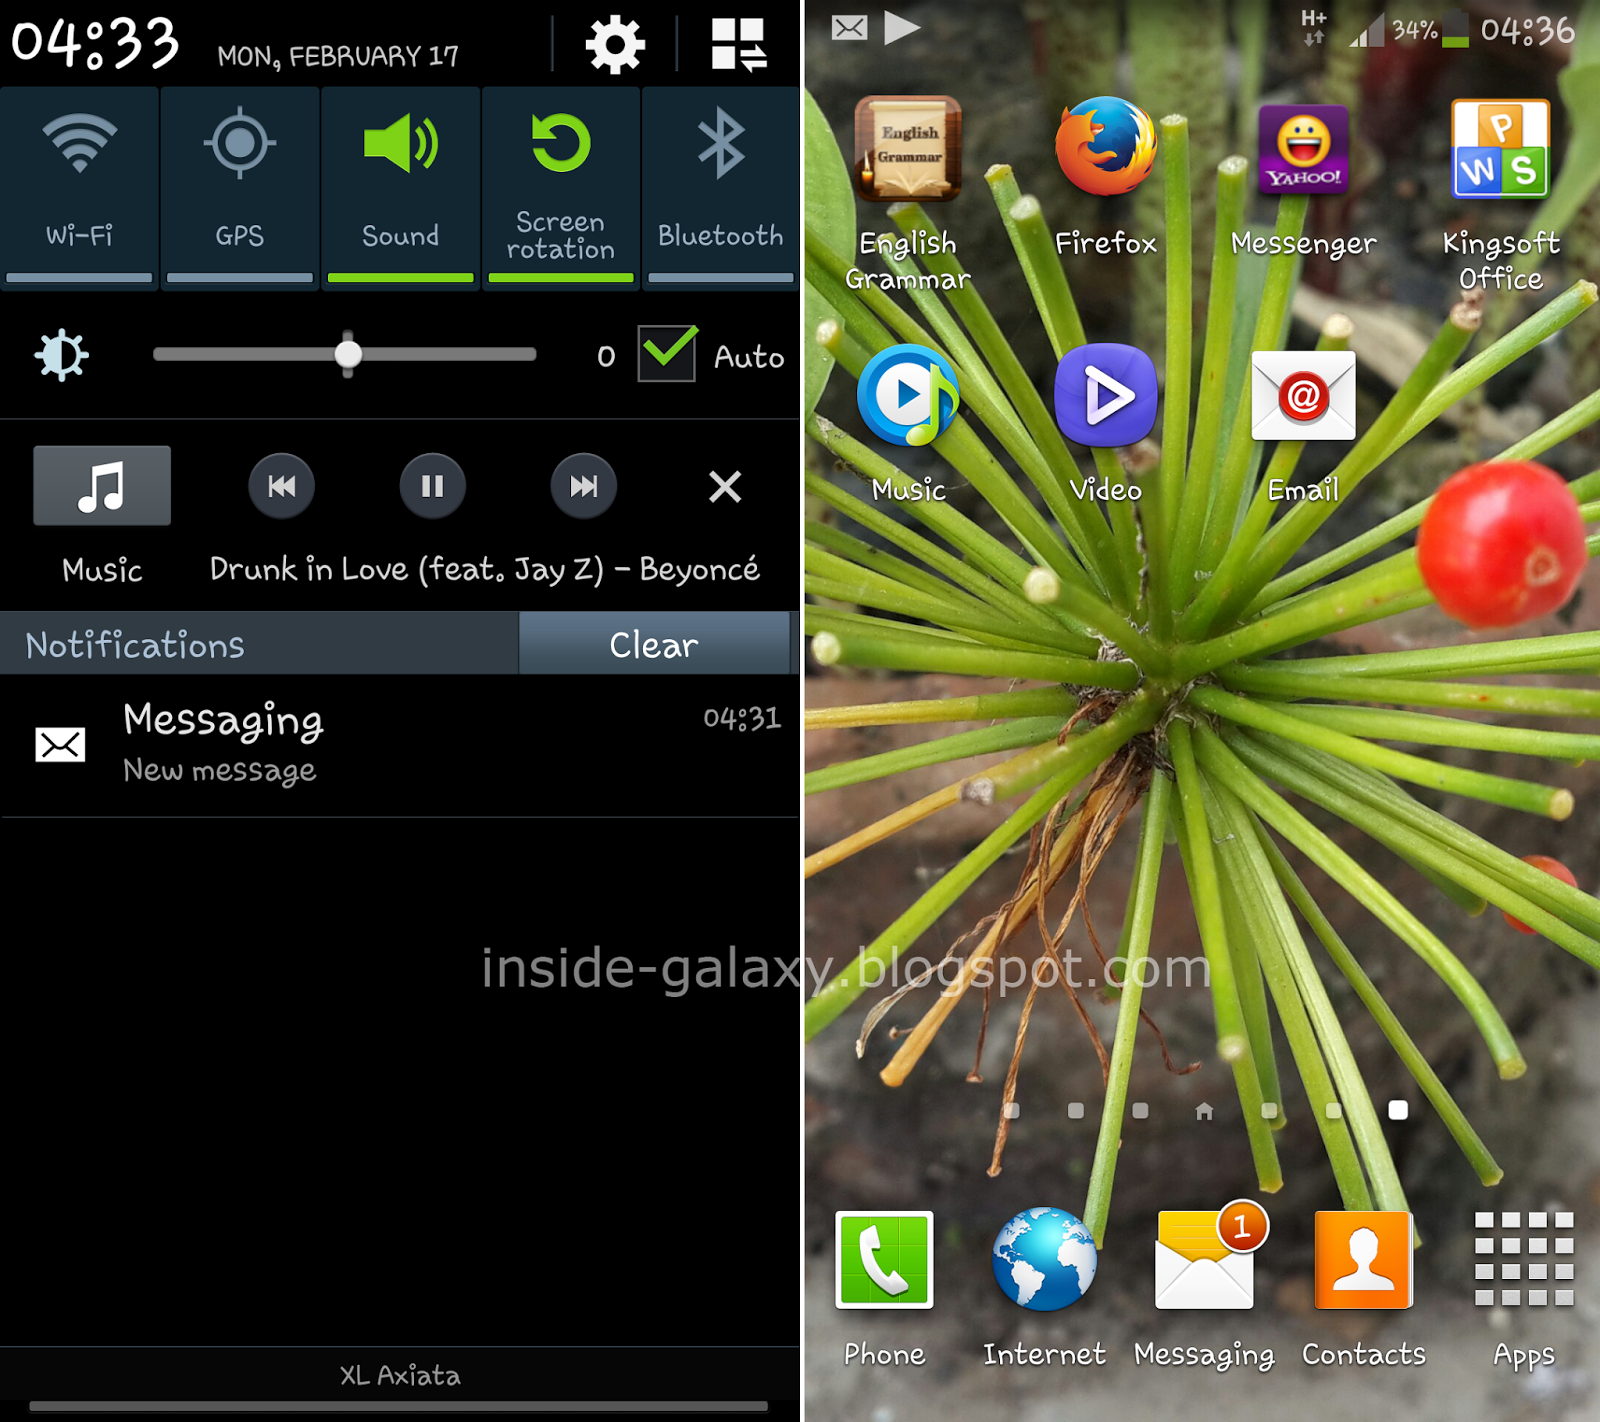 Samsung Galaxy S4: How to View, Reply and Forward Text Messages